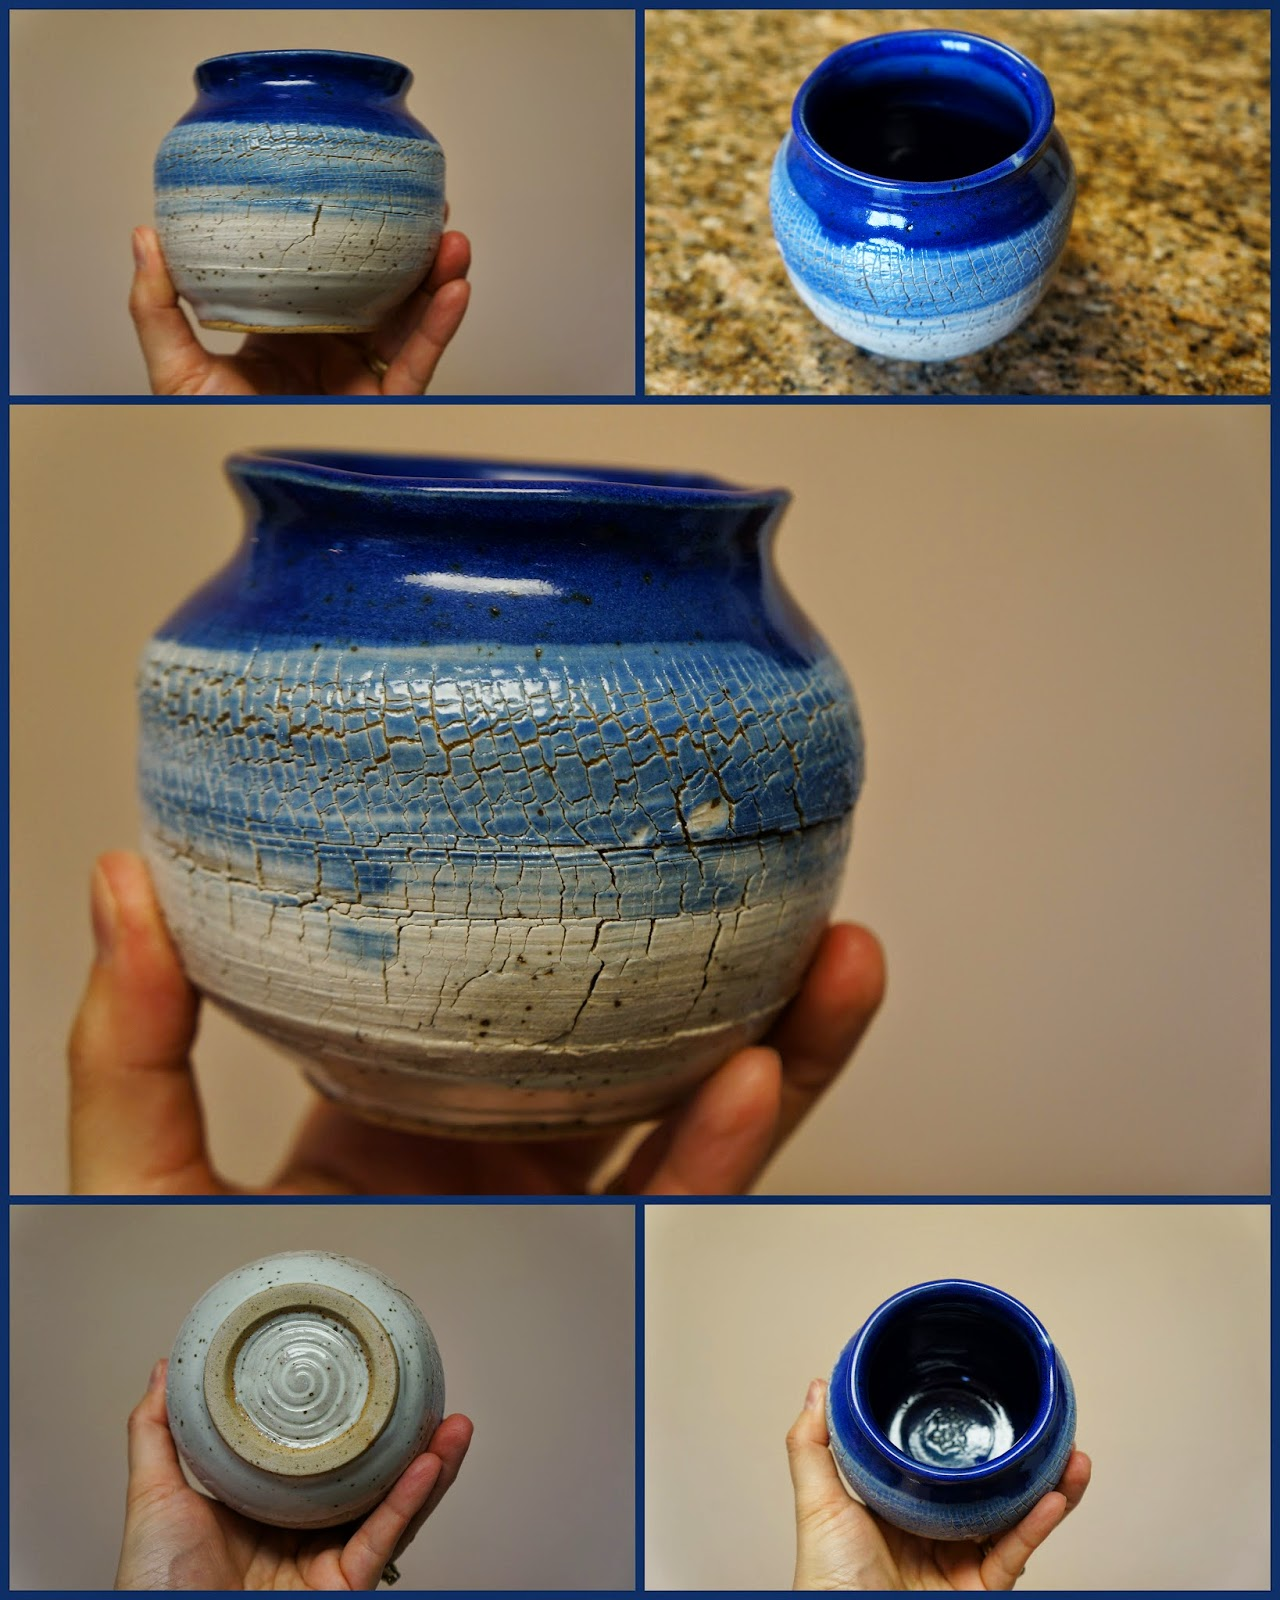 Gorgeous sodium silicate crackle stoneware ceramic vase in blues and whites.